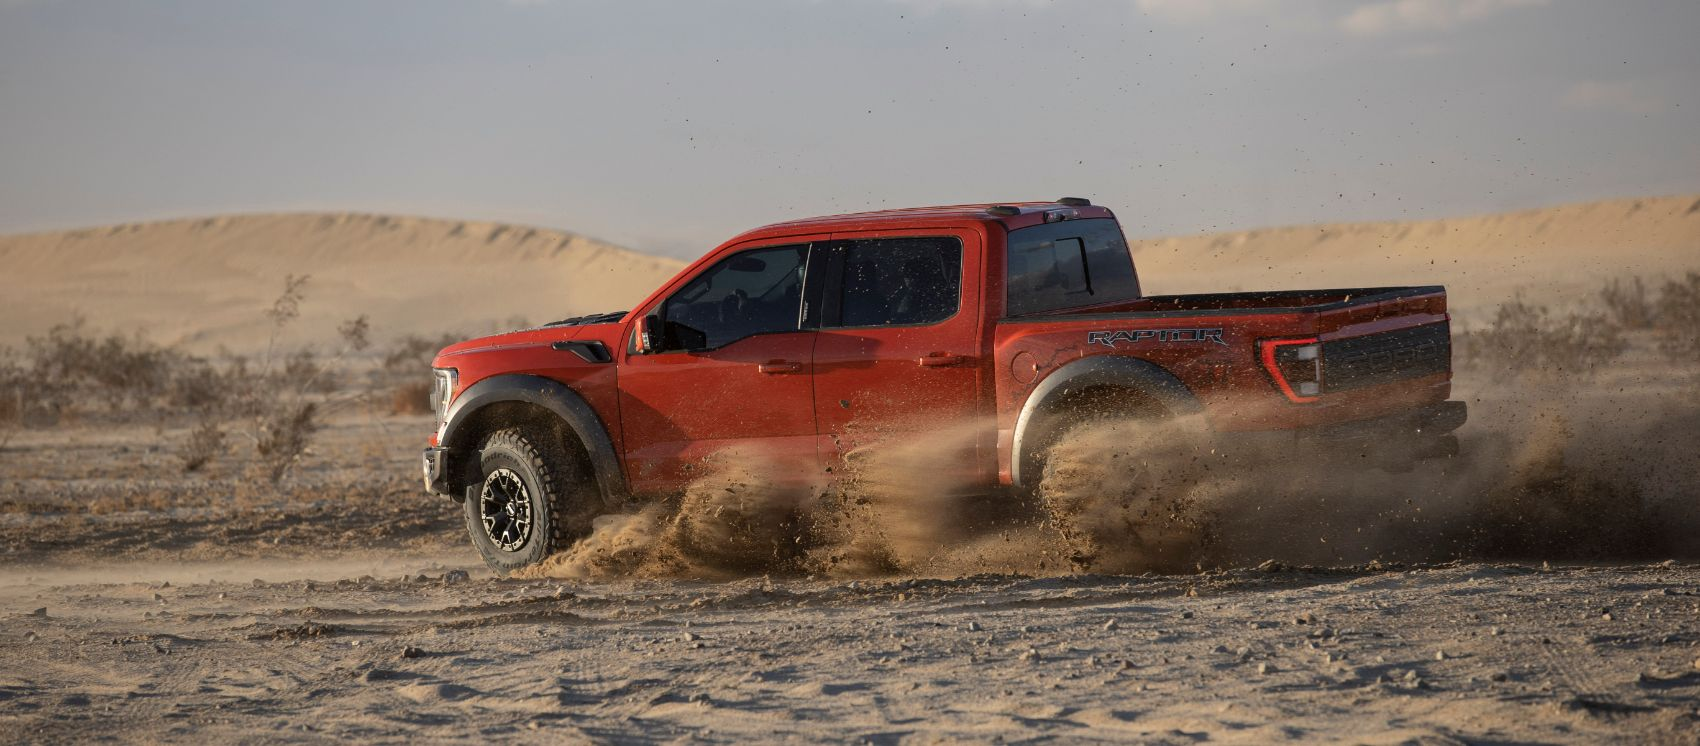 2021 Ford F-150 Raptor Revealed: It's Big, Bad & Kind of Beautiful